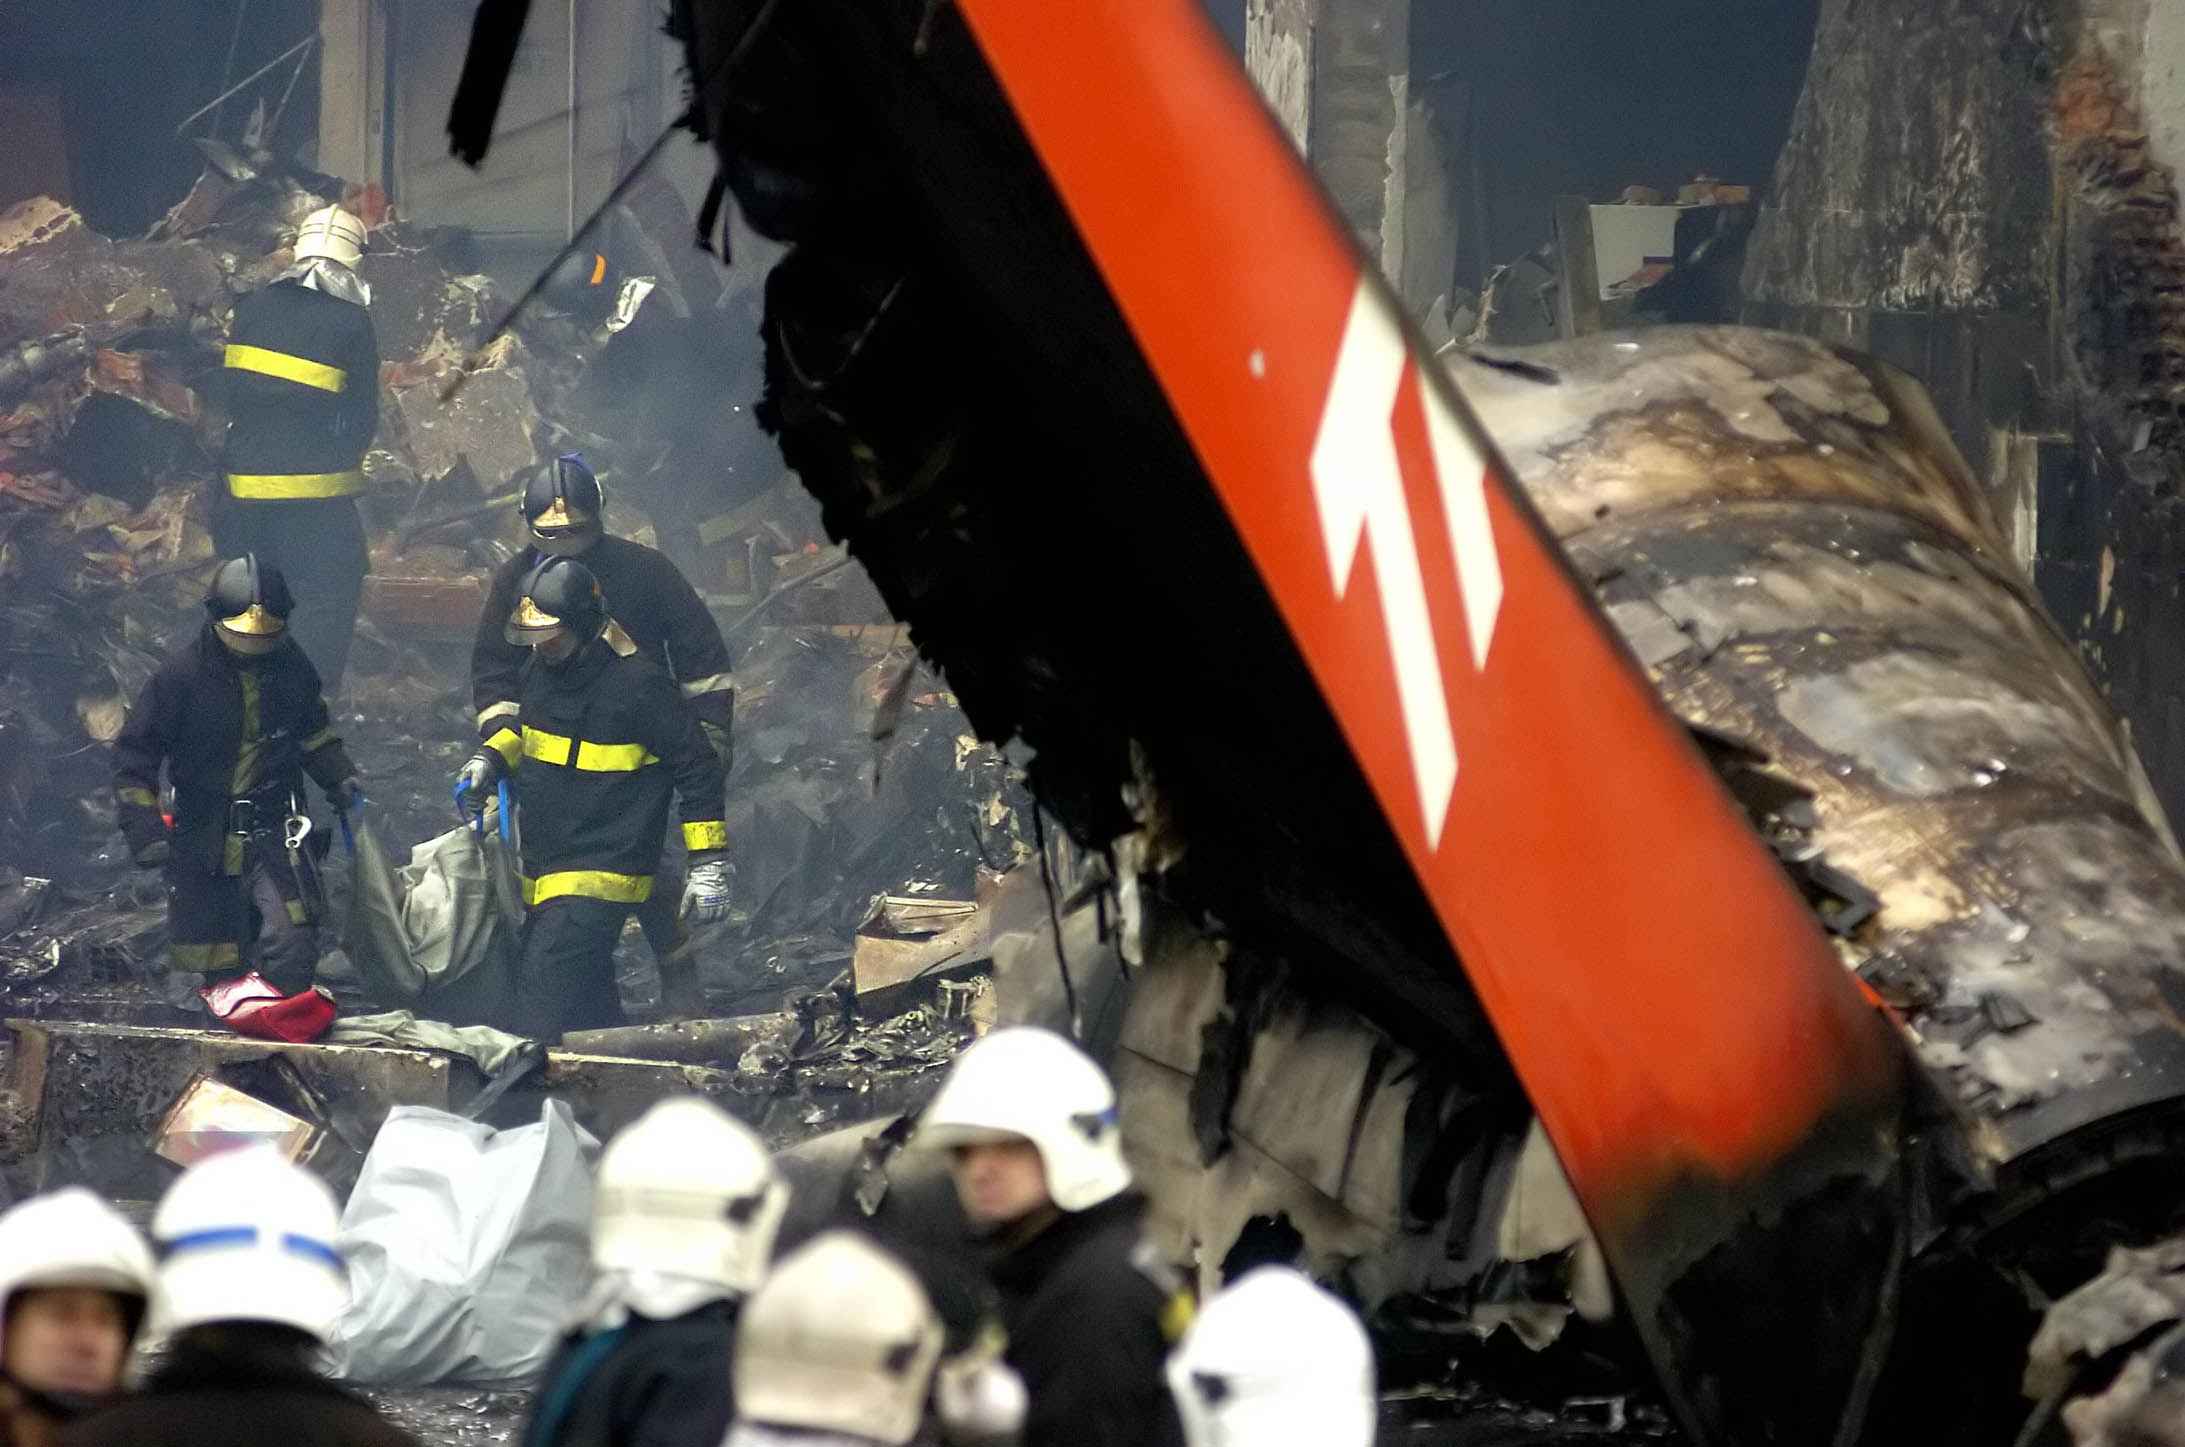 TAM Airlines Flight 3054 - Wikipedia on helicopter crash investigation, fire investigation, plane crashes on property, police crash investigation, plane home, air force crash investigation, truck accident investigation, bus accident investigation, plane patent, airbus crash investigation, air plane investigation, aircraft crash investigation,